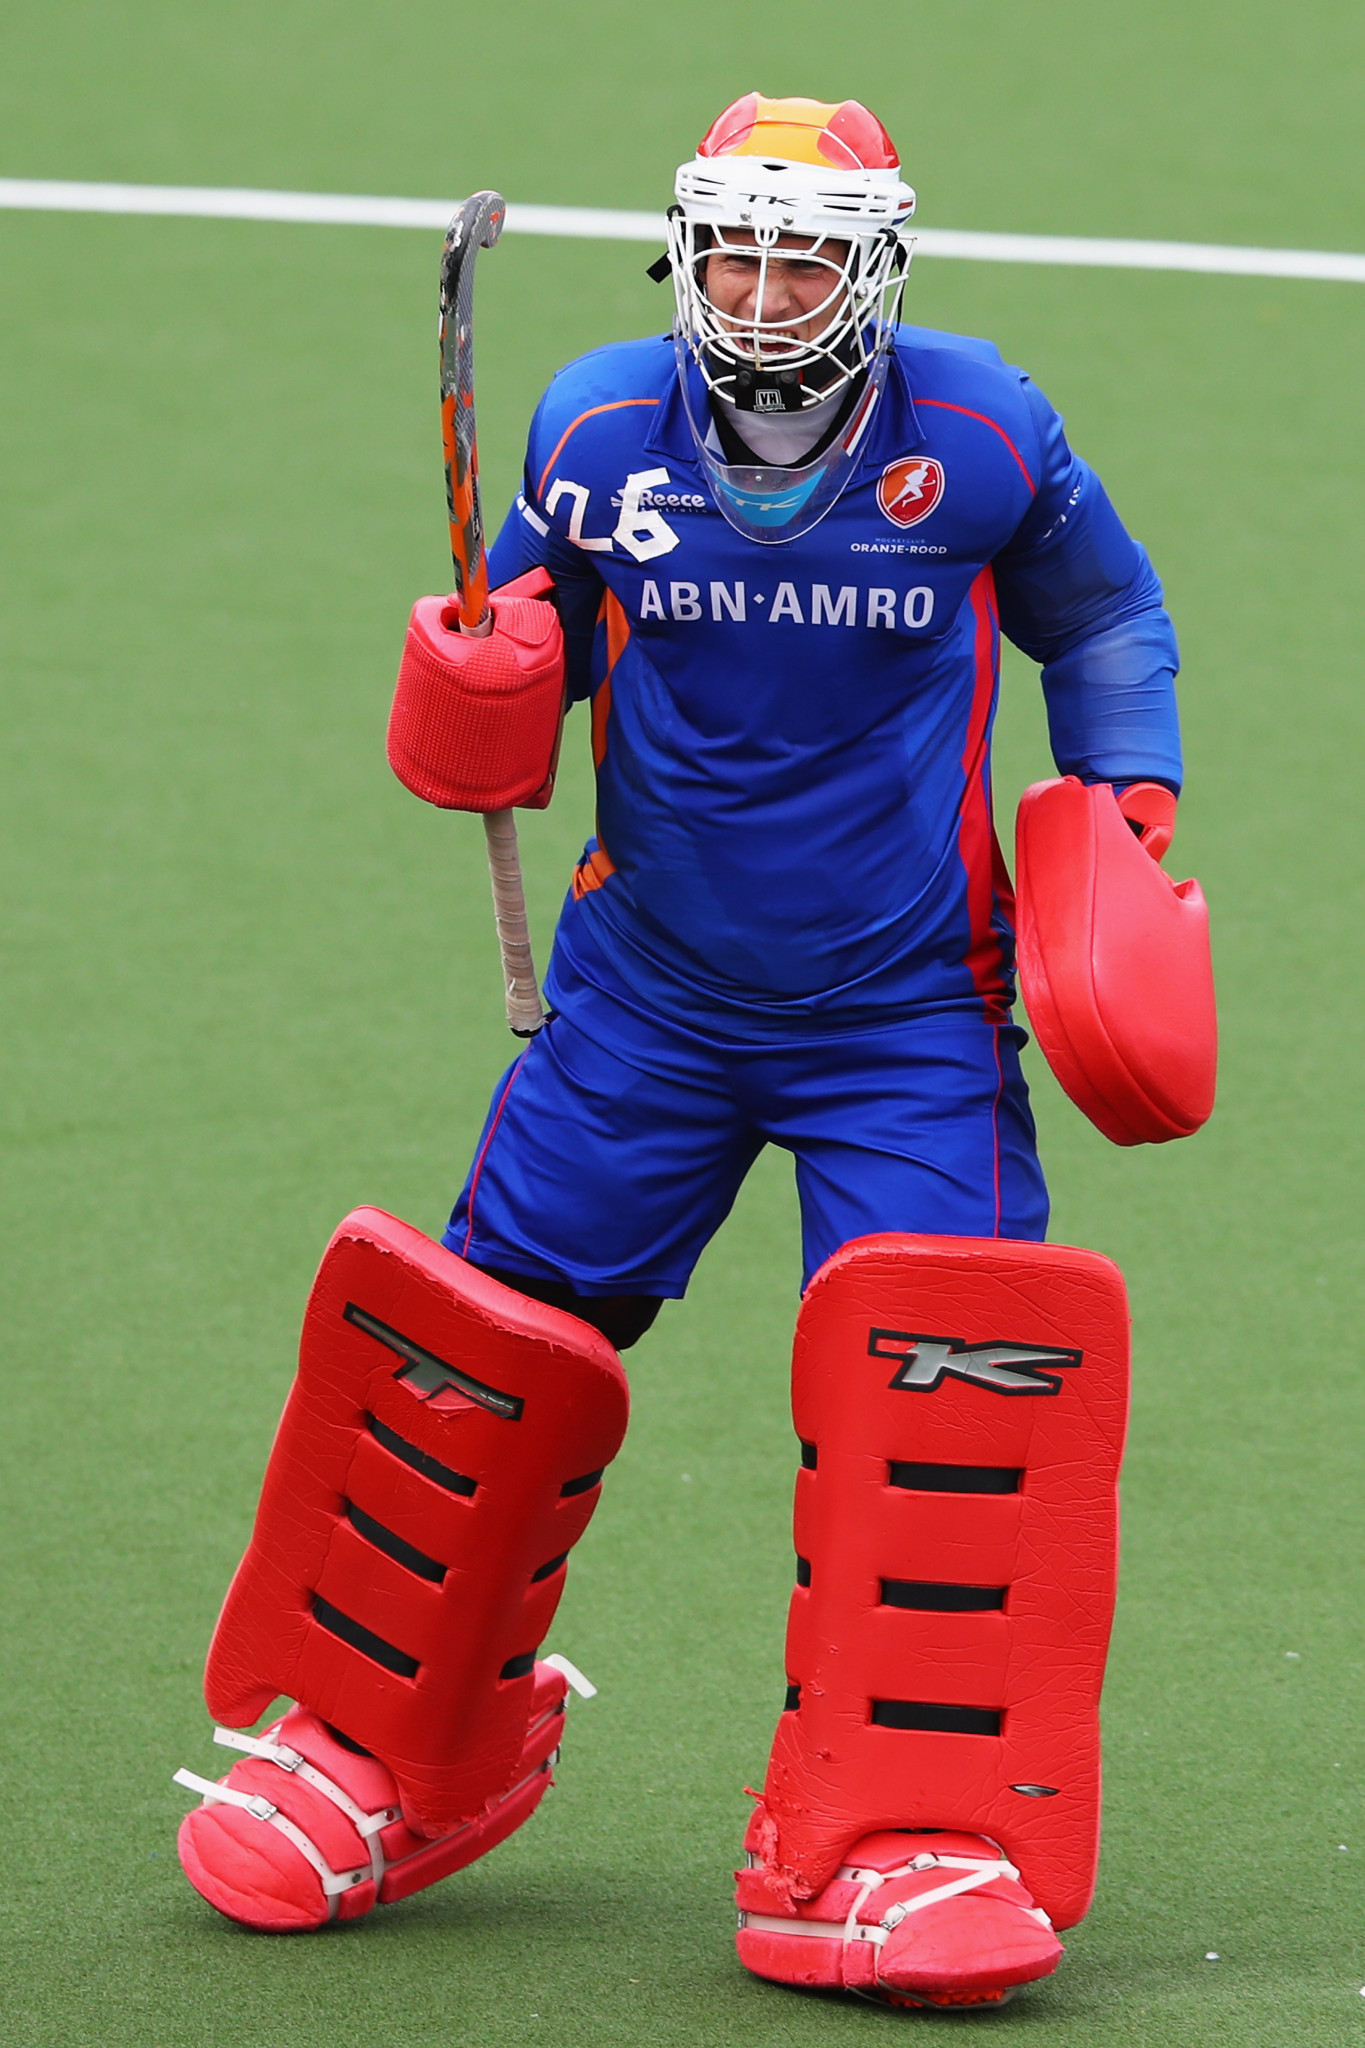 Goalkeeper Pirmin Blaak was the hero for the Netherlands men's hockey team with three penalty shootout saves against New Zealand ©Getty Images